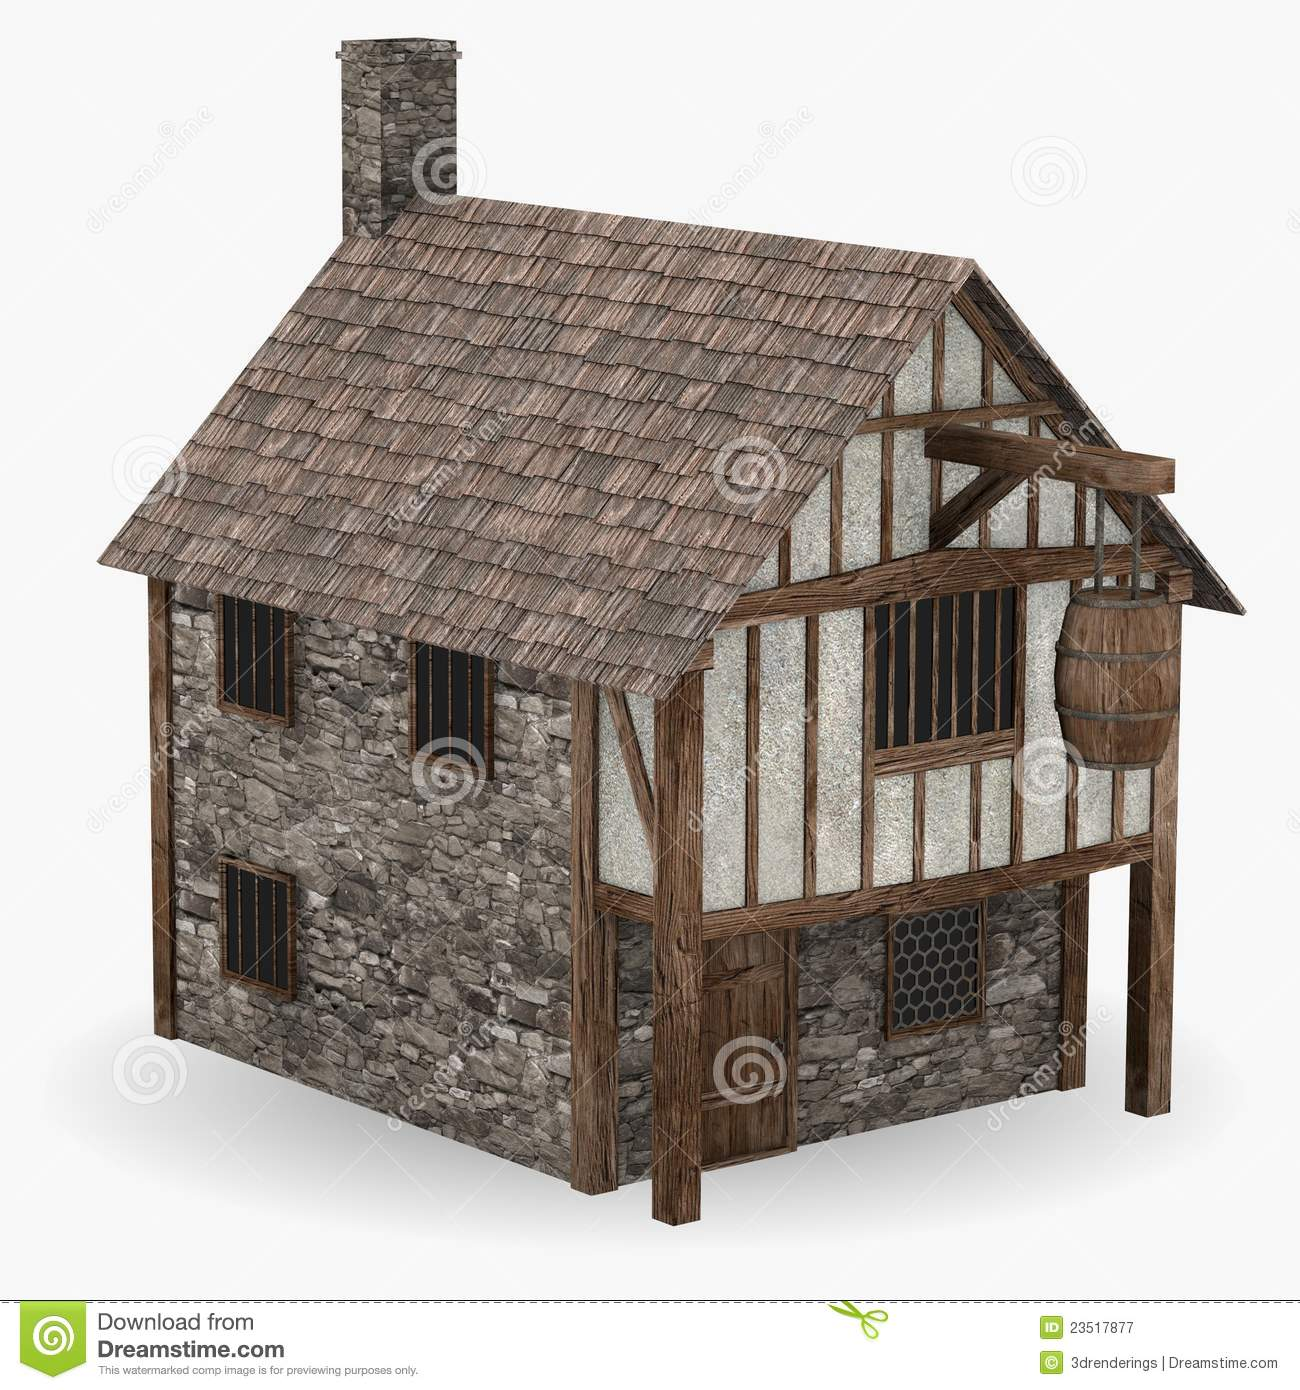 Medieval tavern stock illustration. Illustration of barn ...